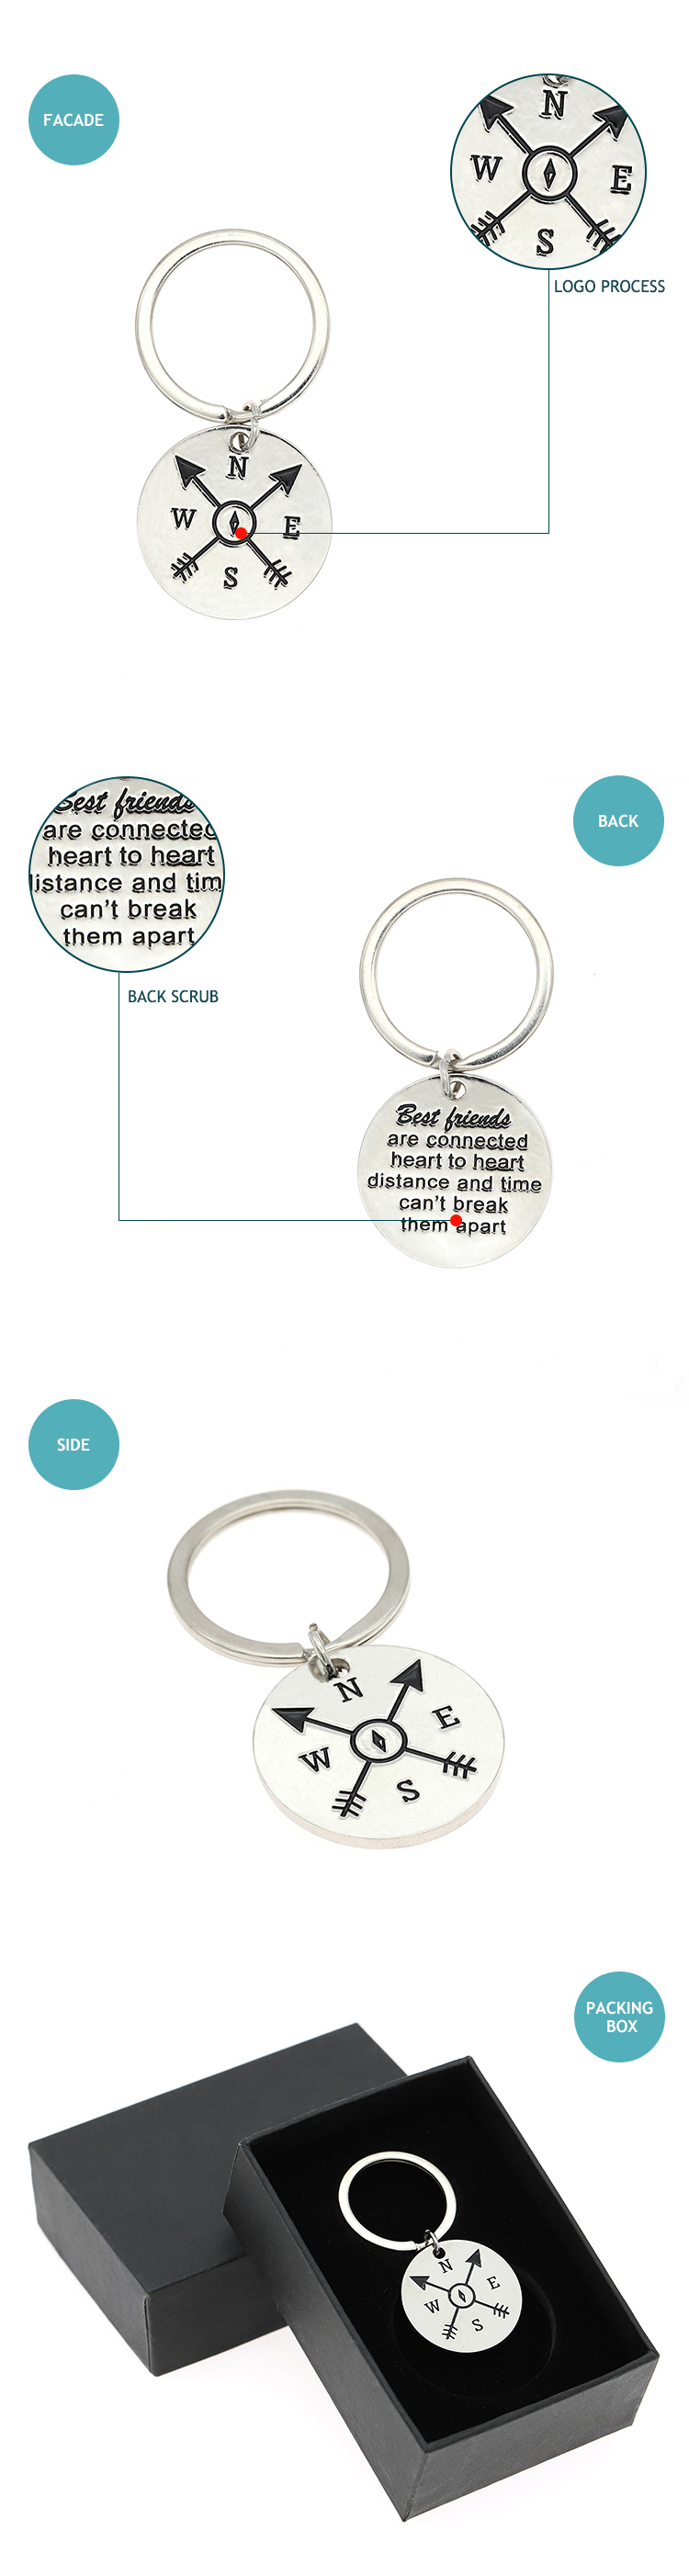 2019 made in china stainless steel key chain with logo